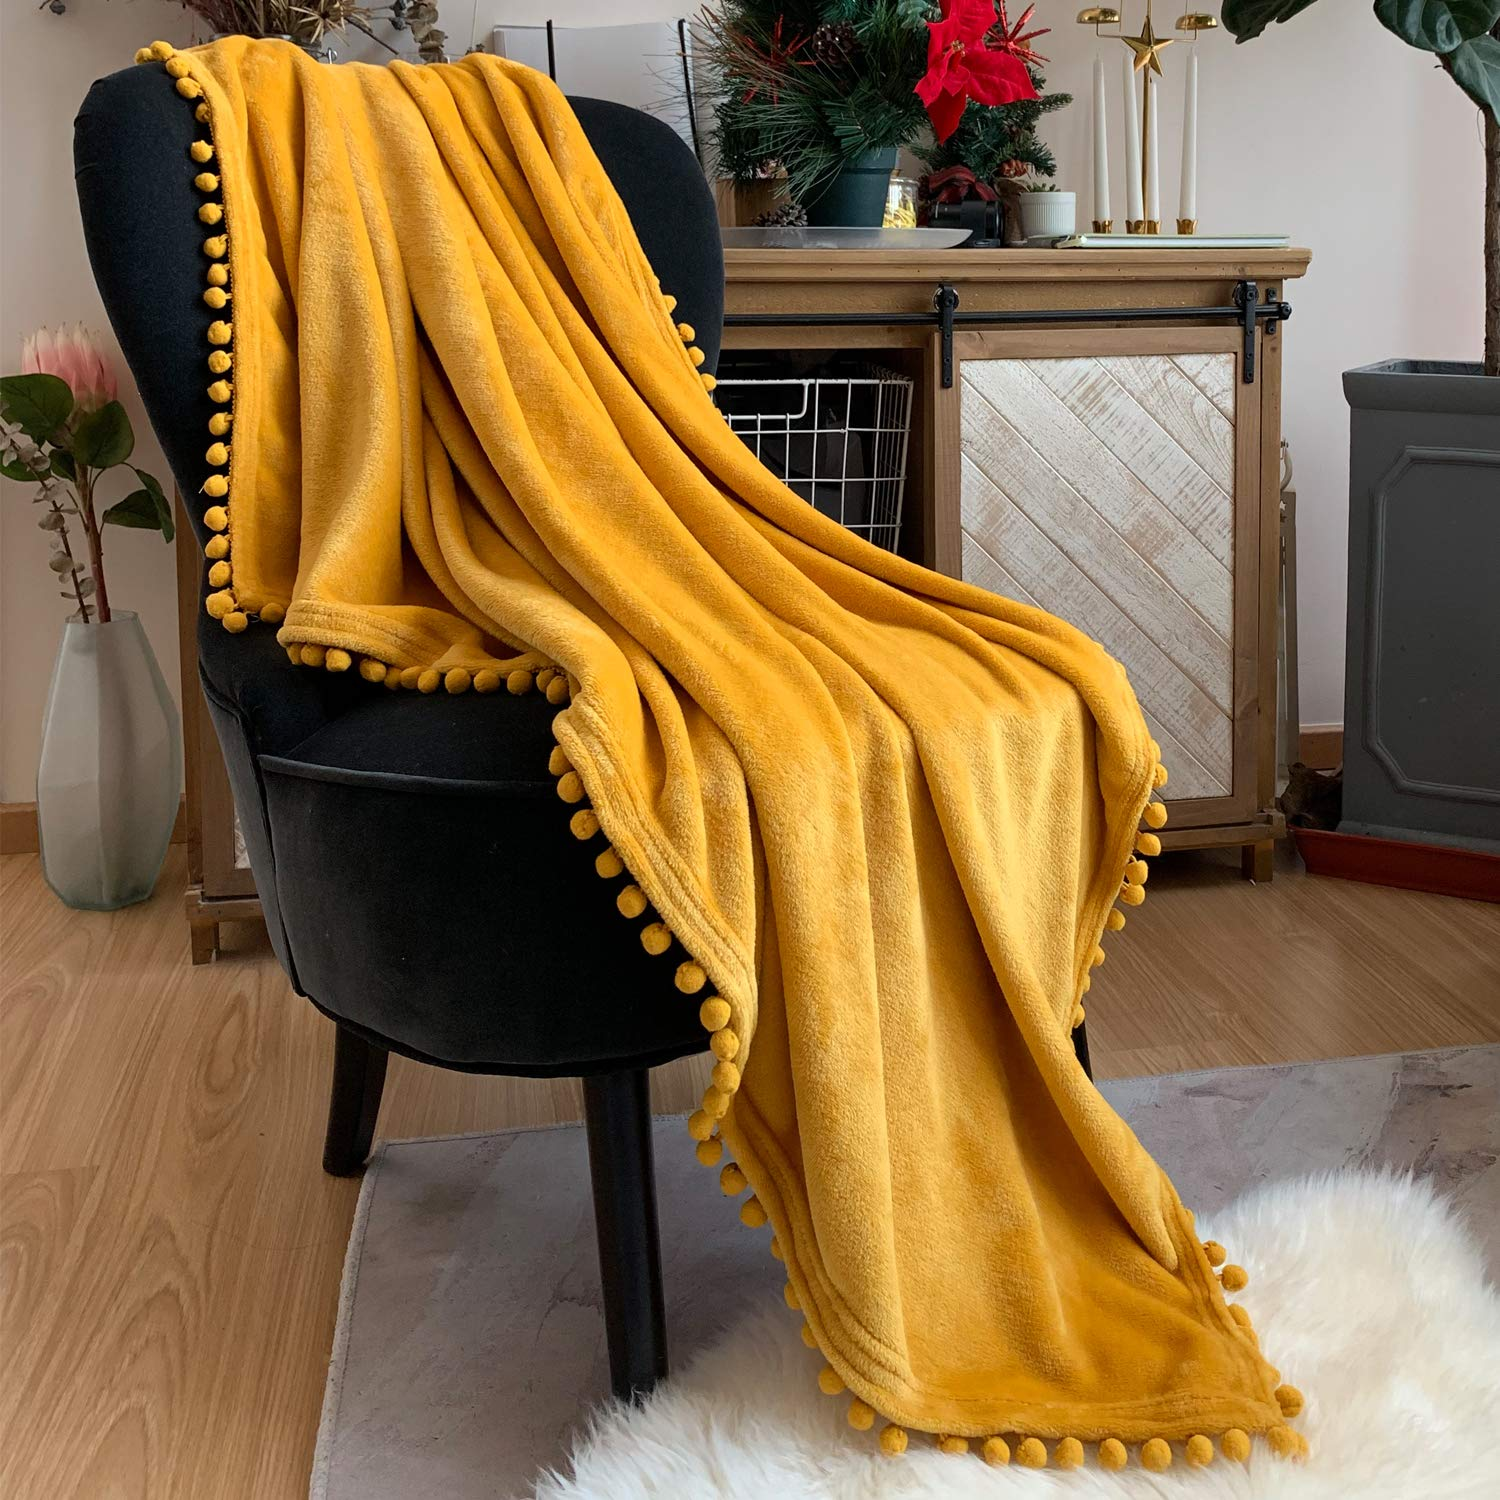 LOMAO Flannel Blanket with Pompom Fringe Lightweight Cozy Bed Blanket Soft Throw Blanket fit Couch Sofa Suitable for All Season (51x63) (Yellow)